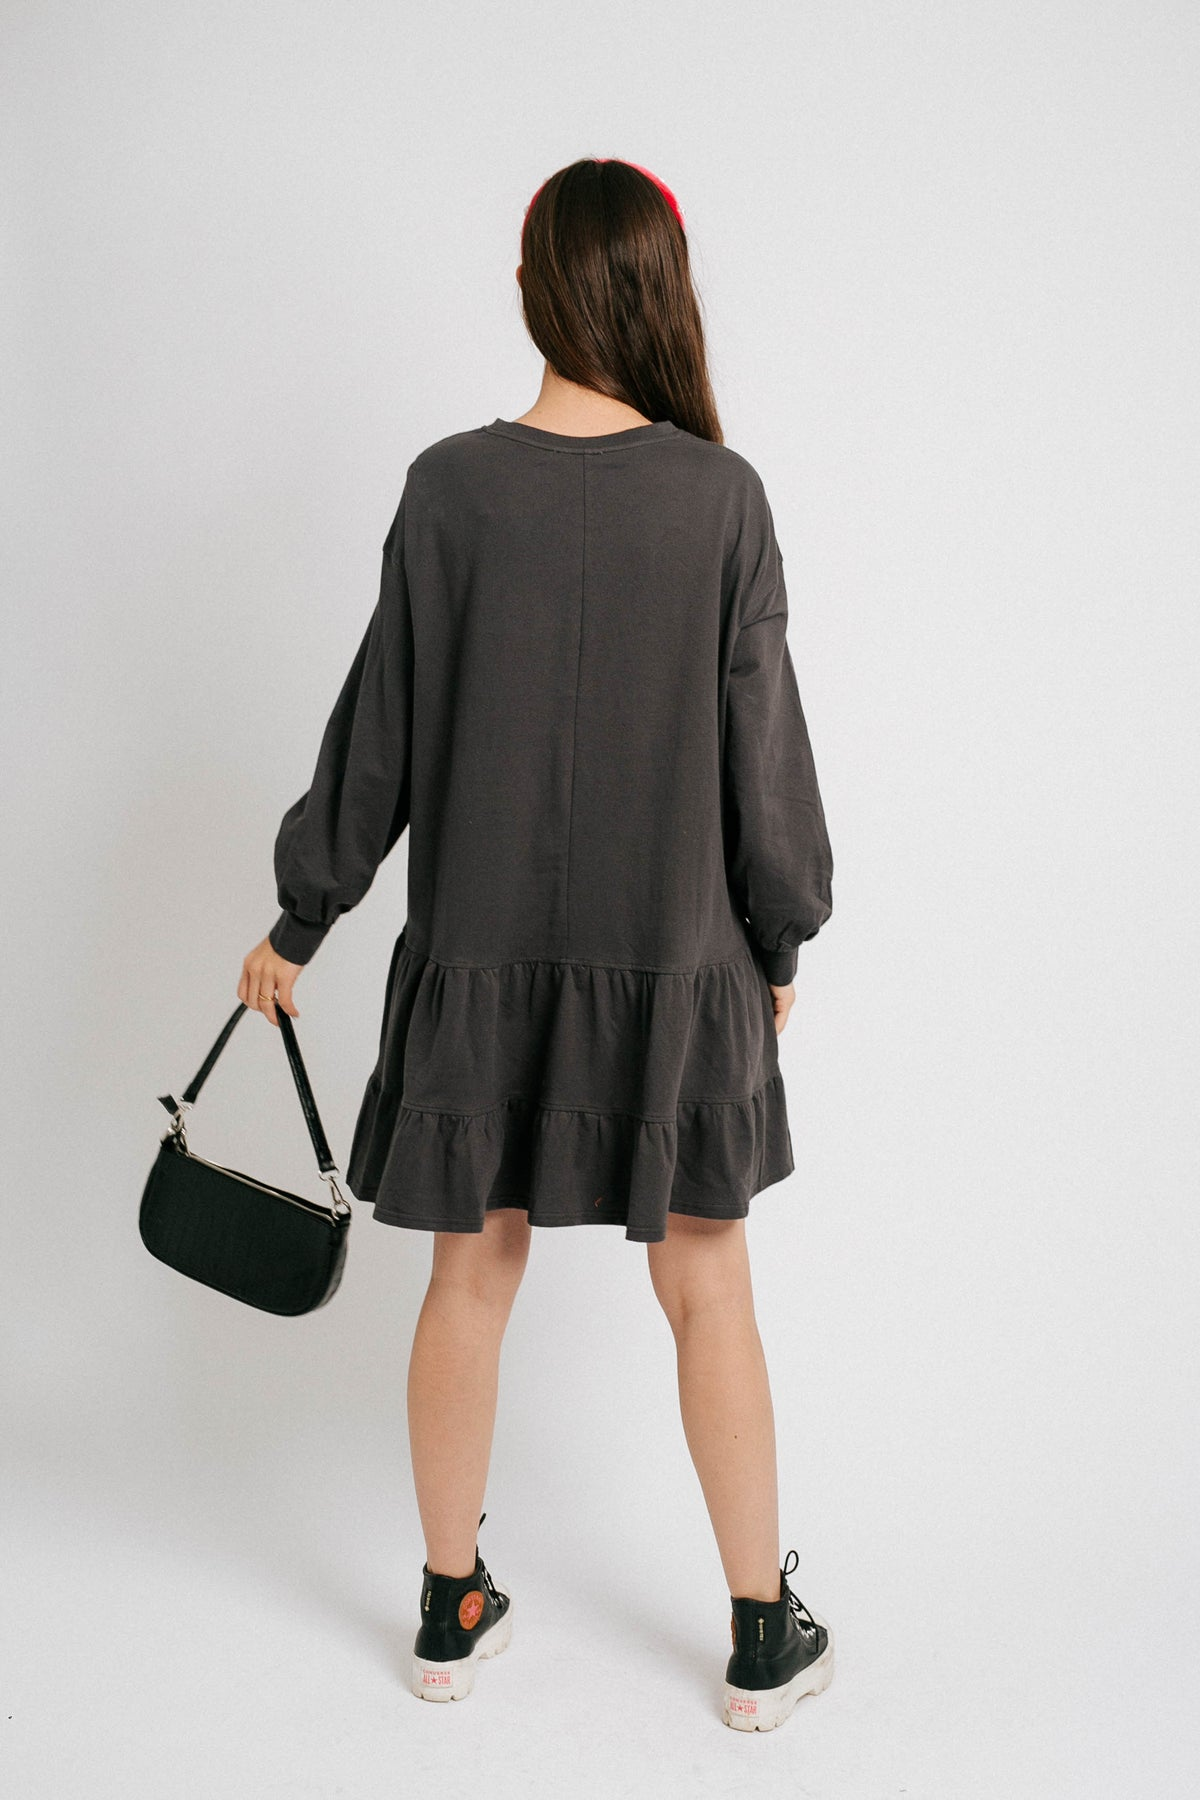 Cool With It Dress// Charcoal